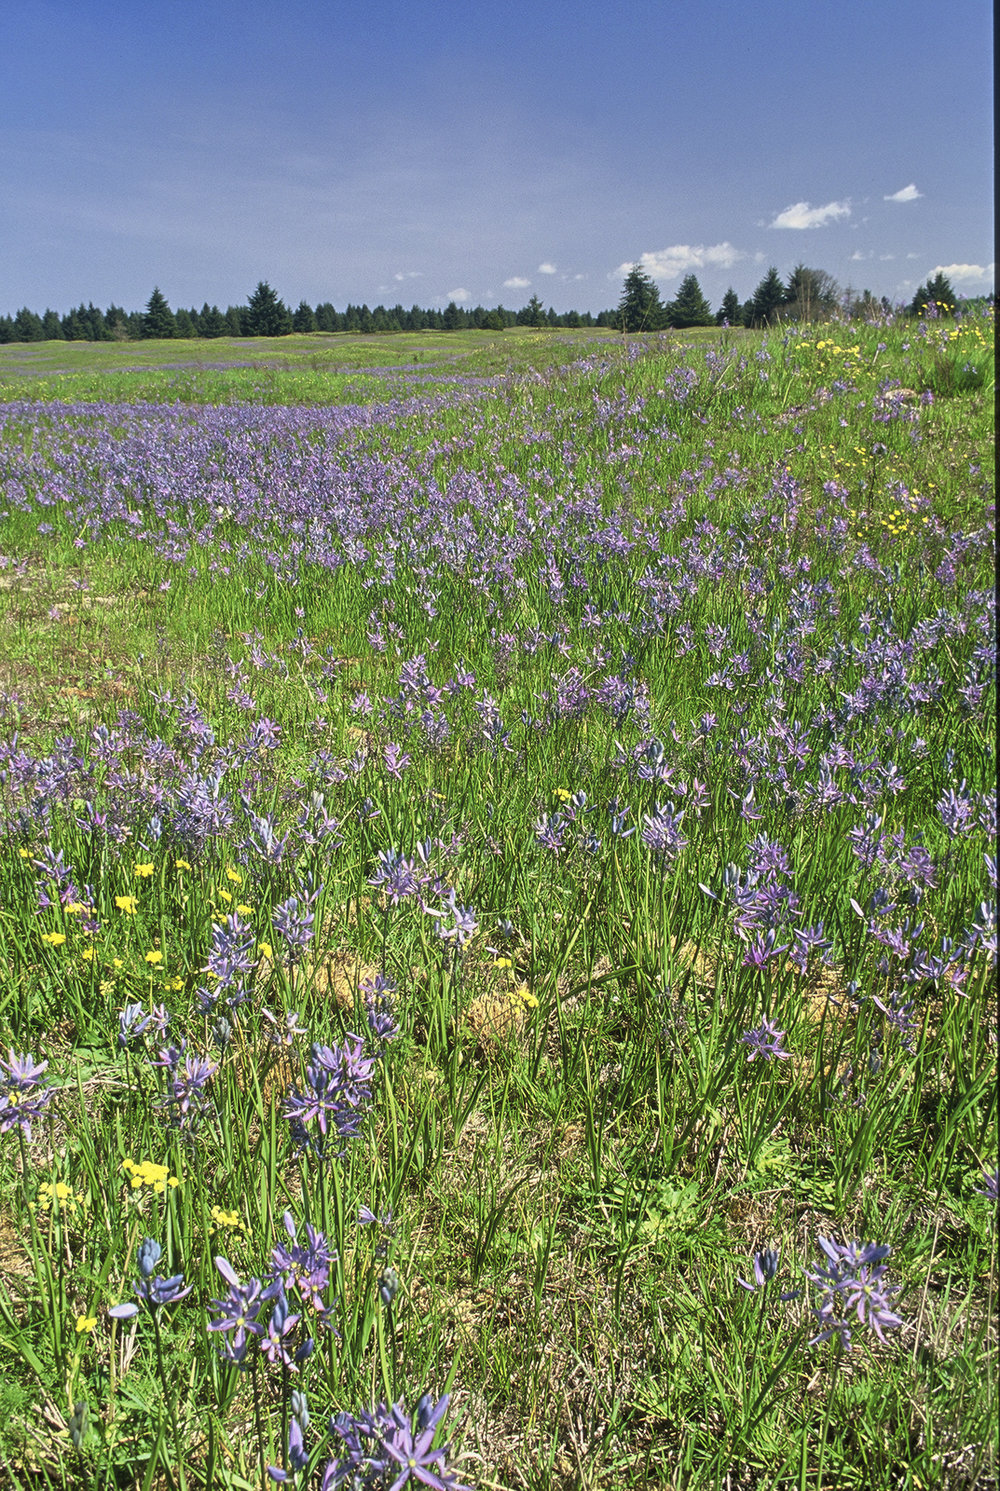 Camas in spring bloom at Glacier Heritage Reserve south of Olympia, WA. Photo by Keith Lazelle.